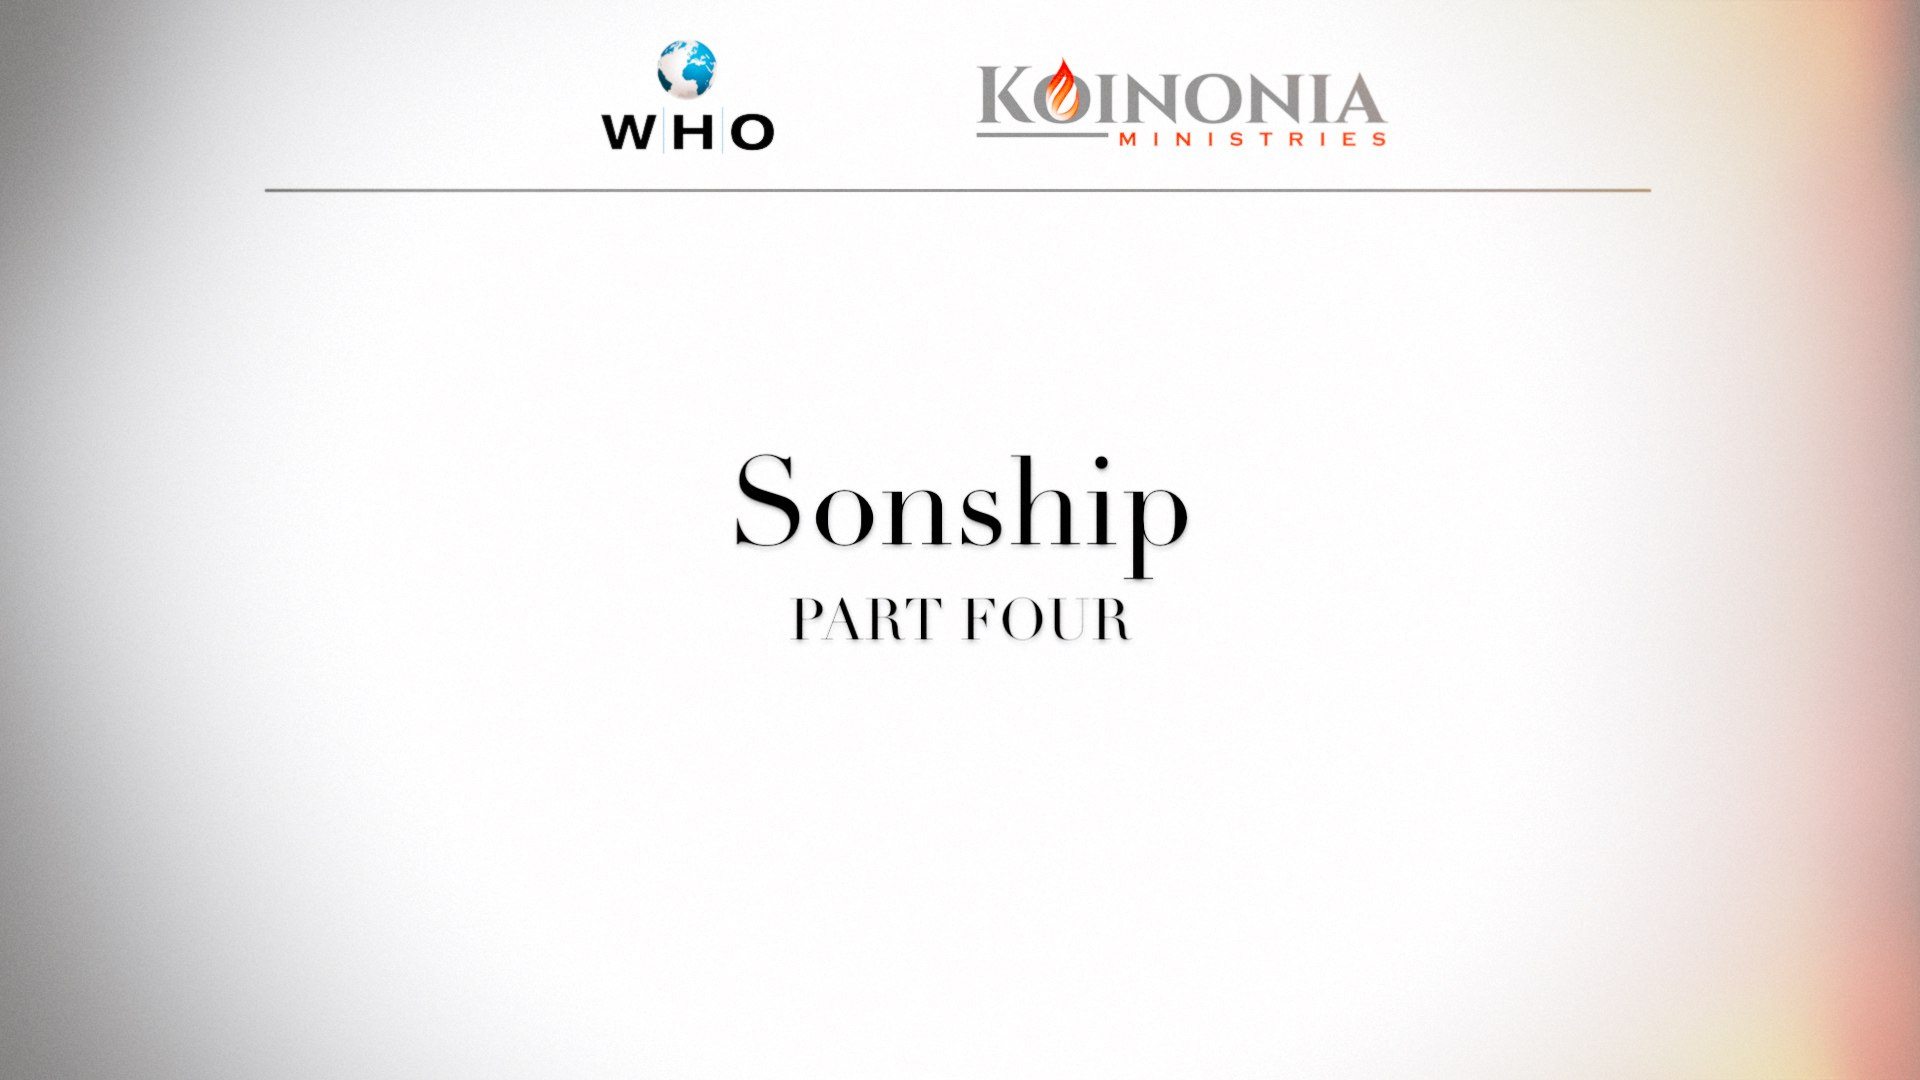 SONSHIP, PART 4 OF 4